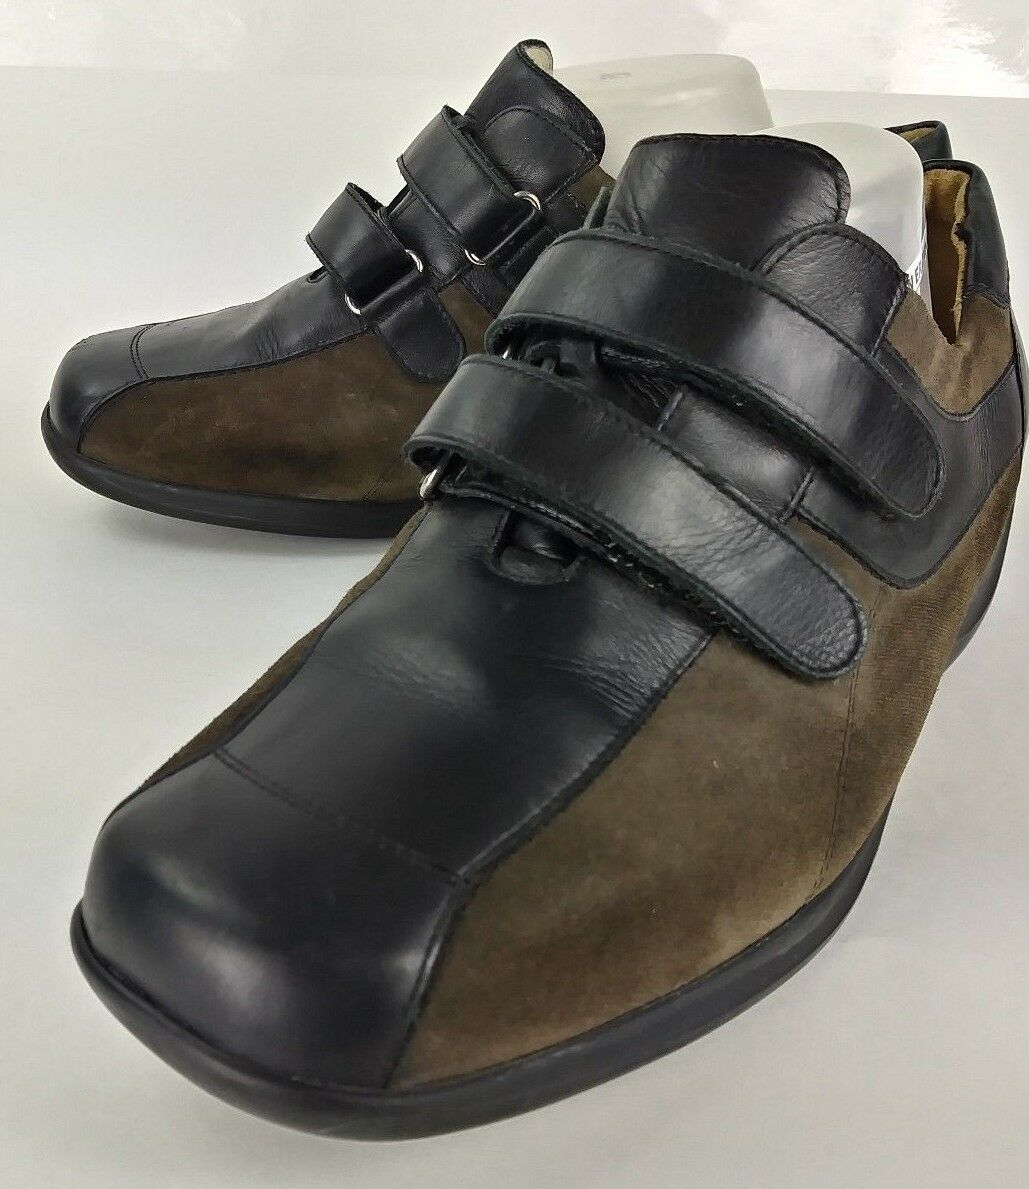 Waldlaufer Womens US 10.5 shoes UK 8.5 Black Leather Brown Suede Loafers 2104